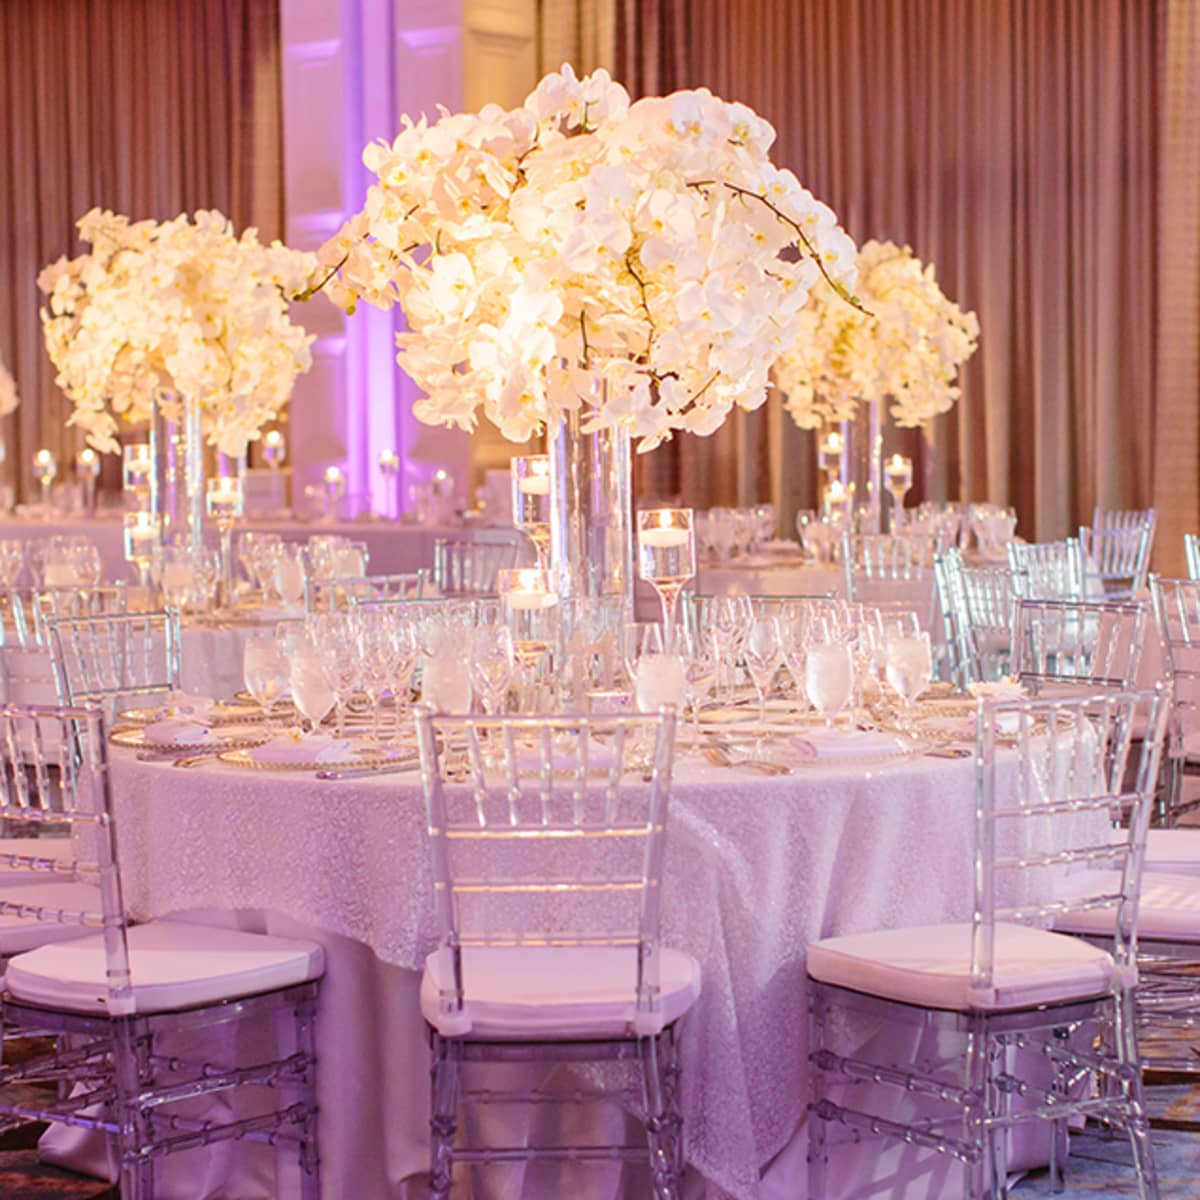 Weddings at disney parks and resorts - White Flowers And Candlelight Enhance The Reception Tables